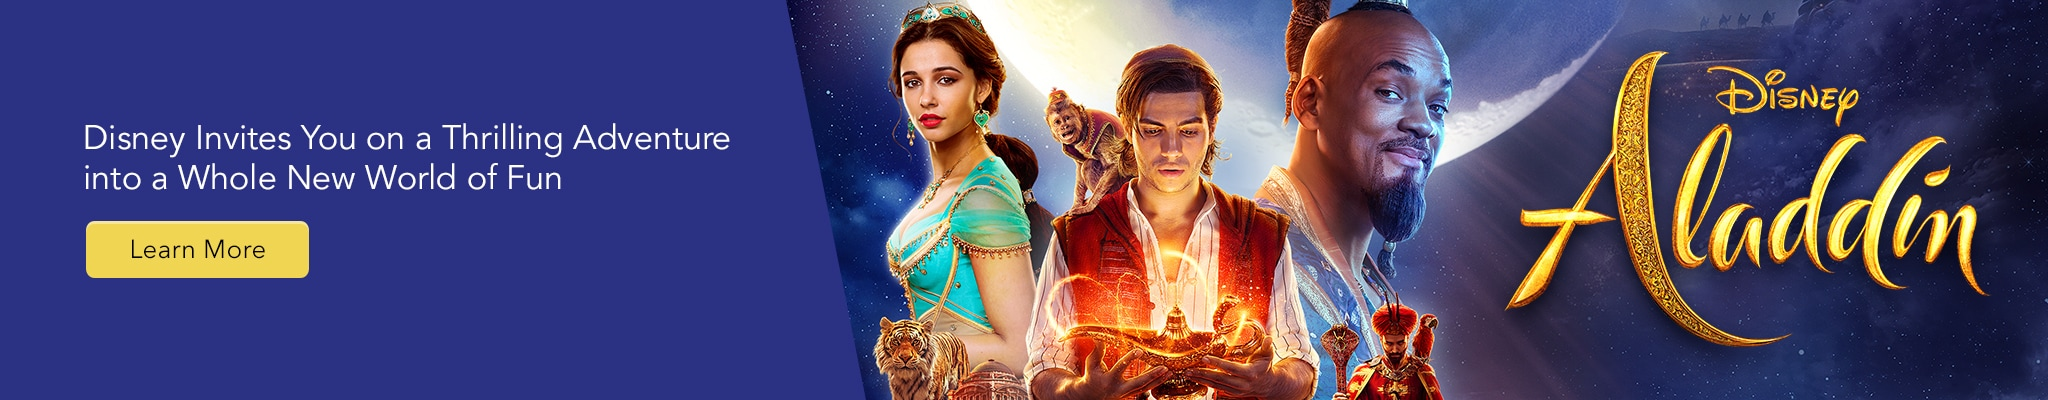 Disney Aladdin. Disney Invites You on a Thrilling Adventure into a Whole New World of Fun.